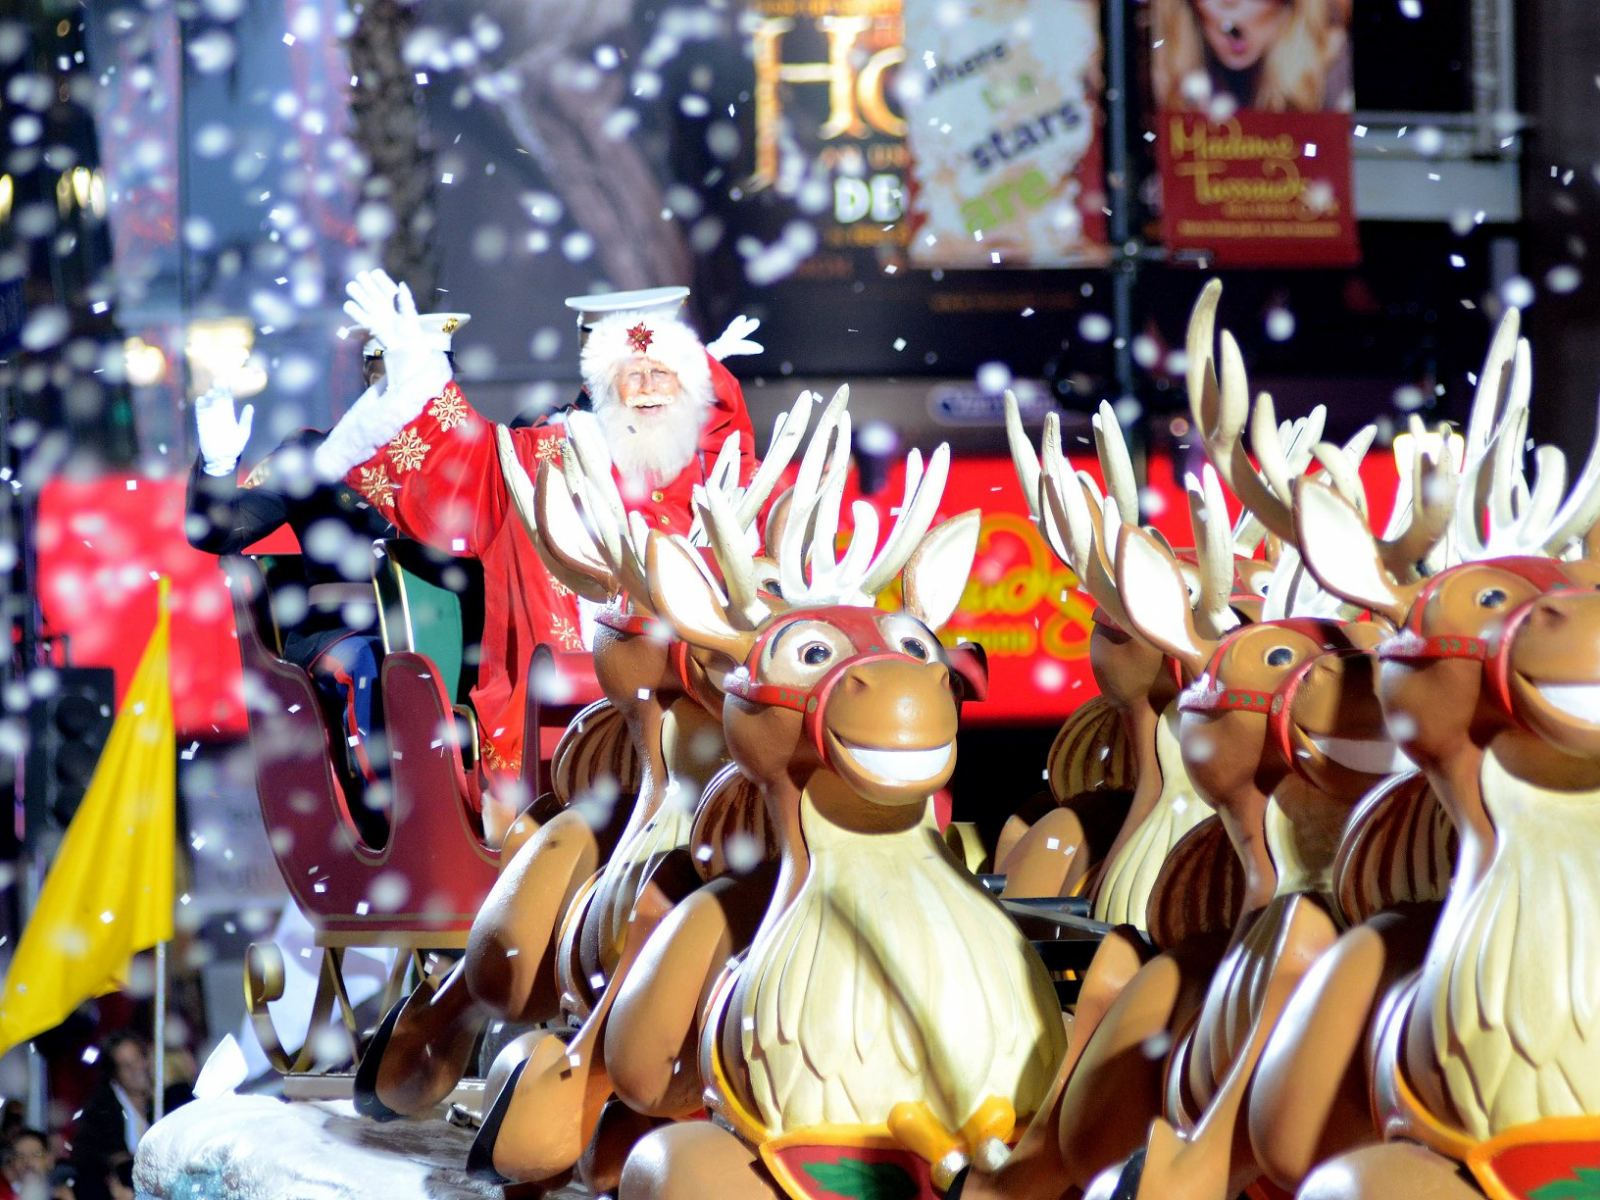 Santa Claus and his reindeer at the Hollywood Christmas Parade